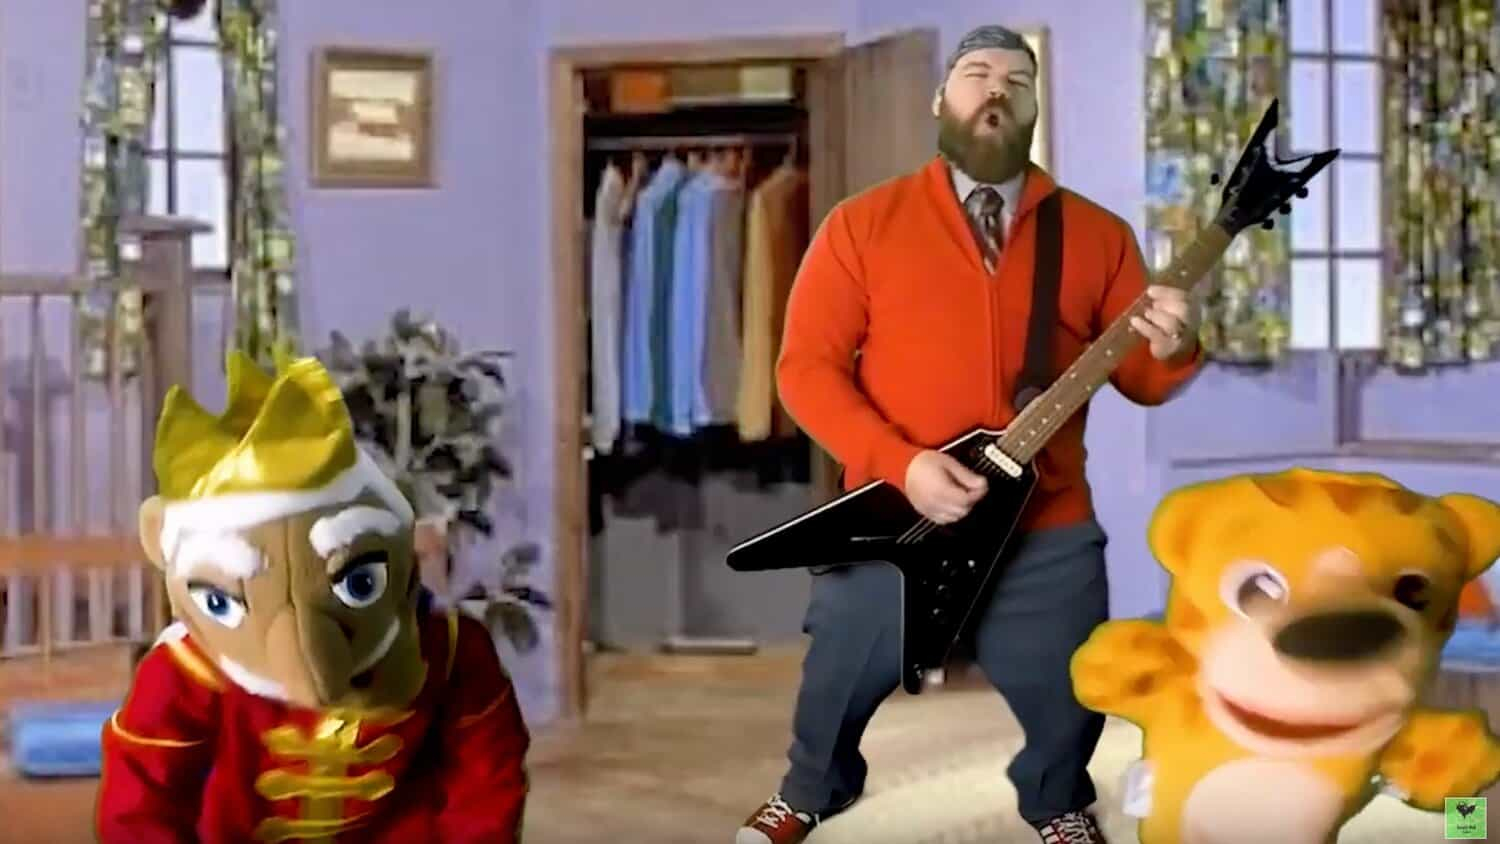 This Heavy Metal Cover Of Mister Rogers Theme Song Won T You Be My Neighbor